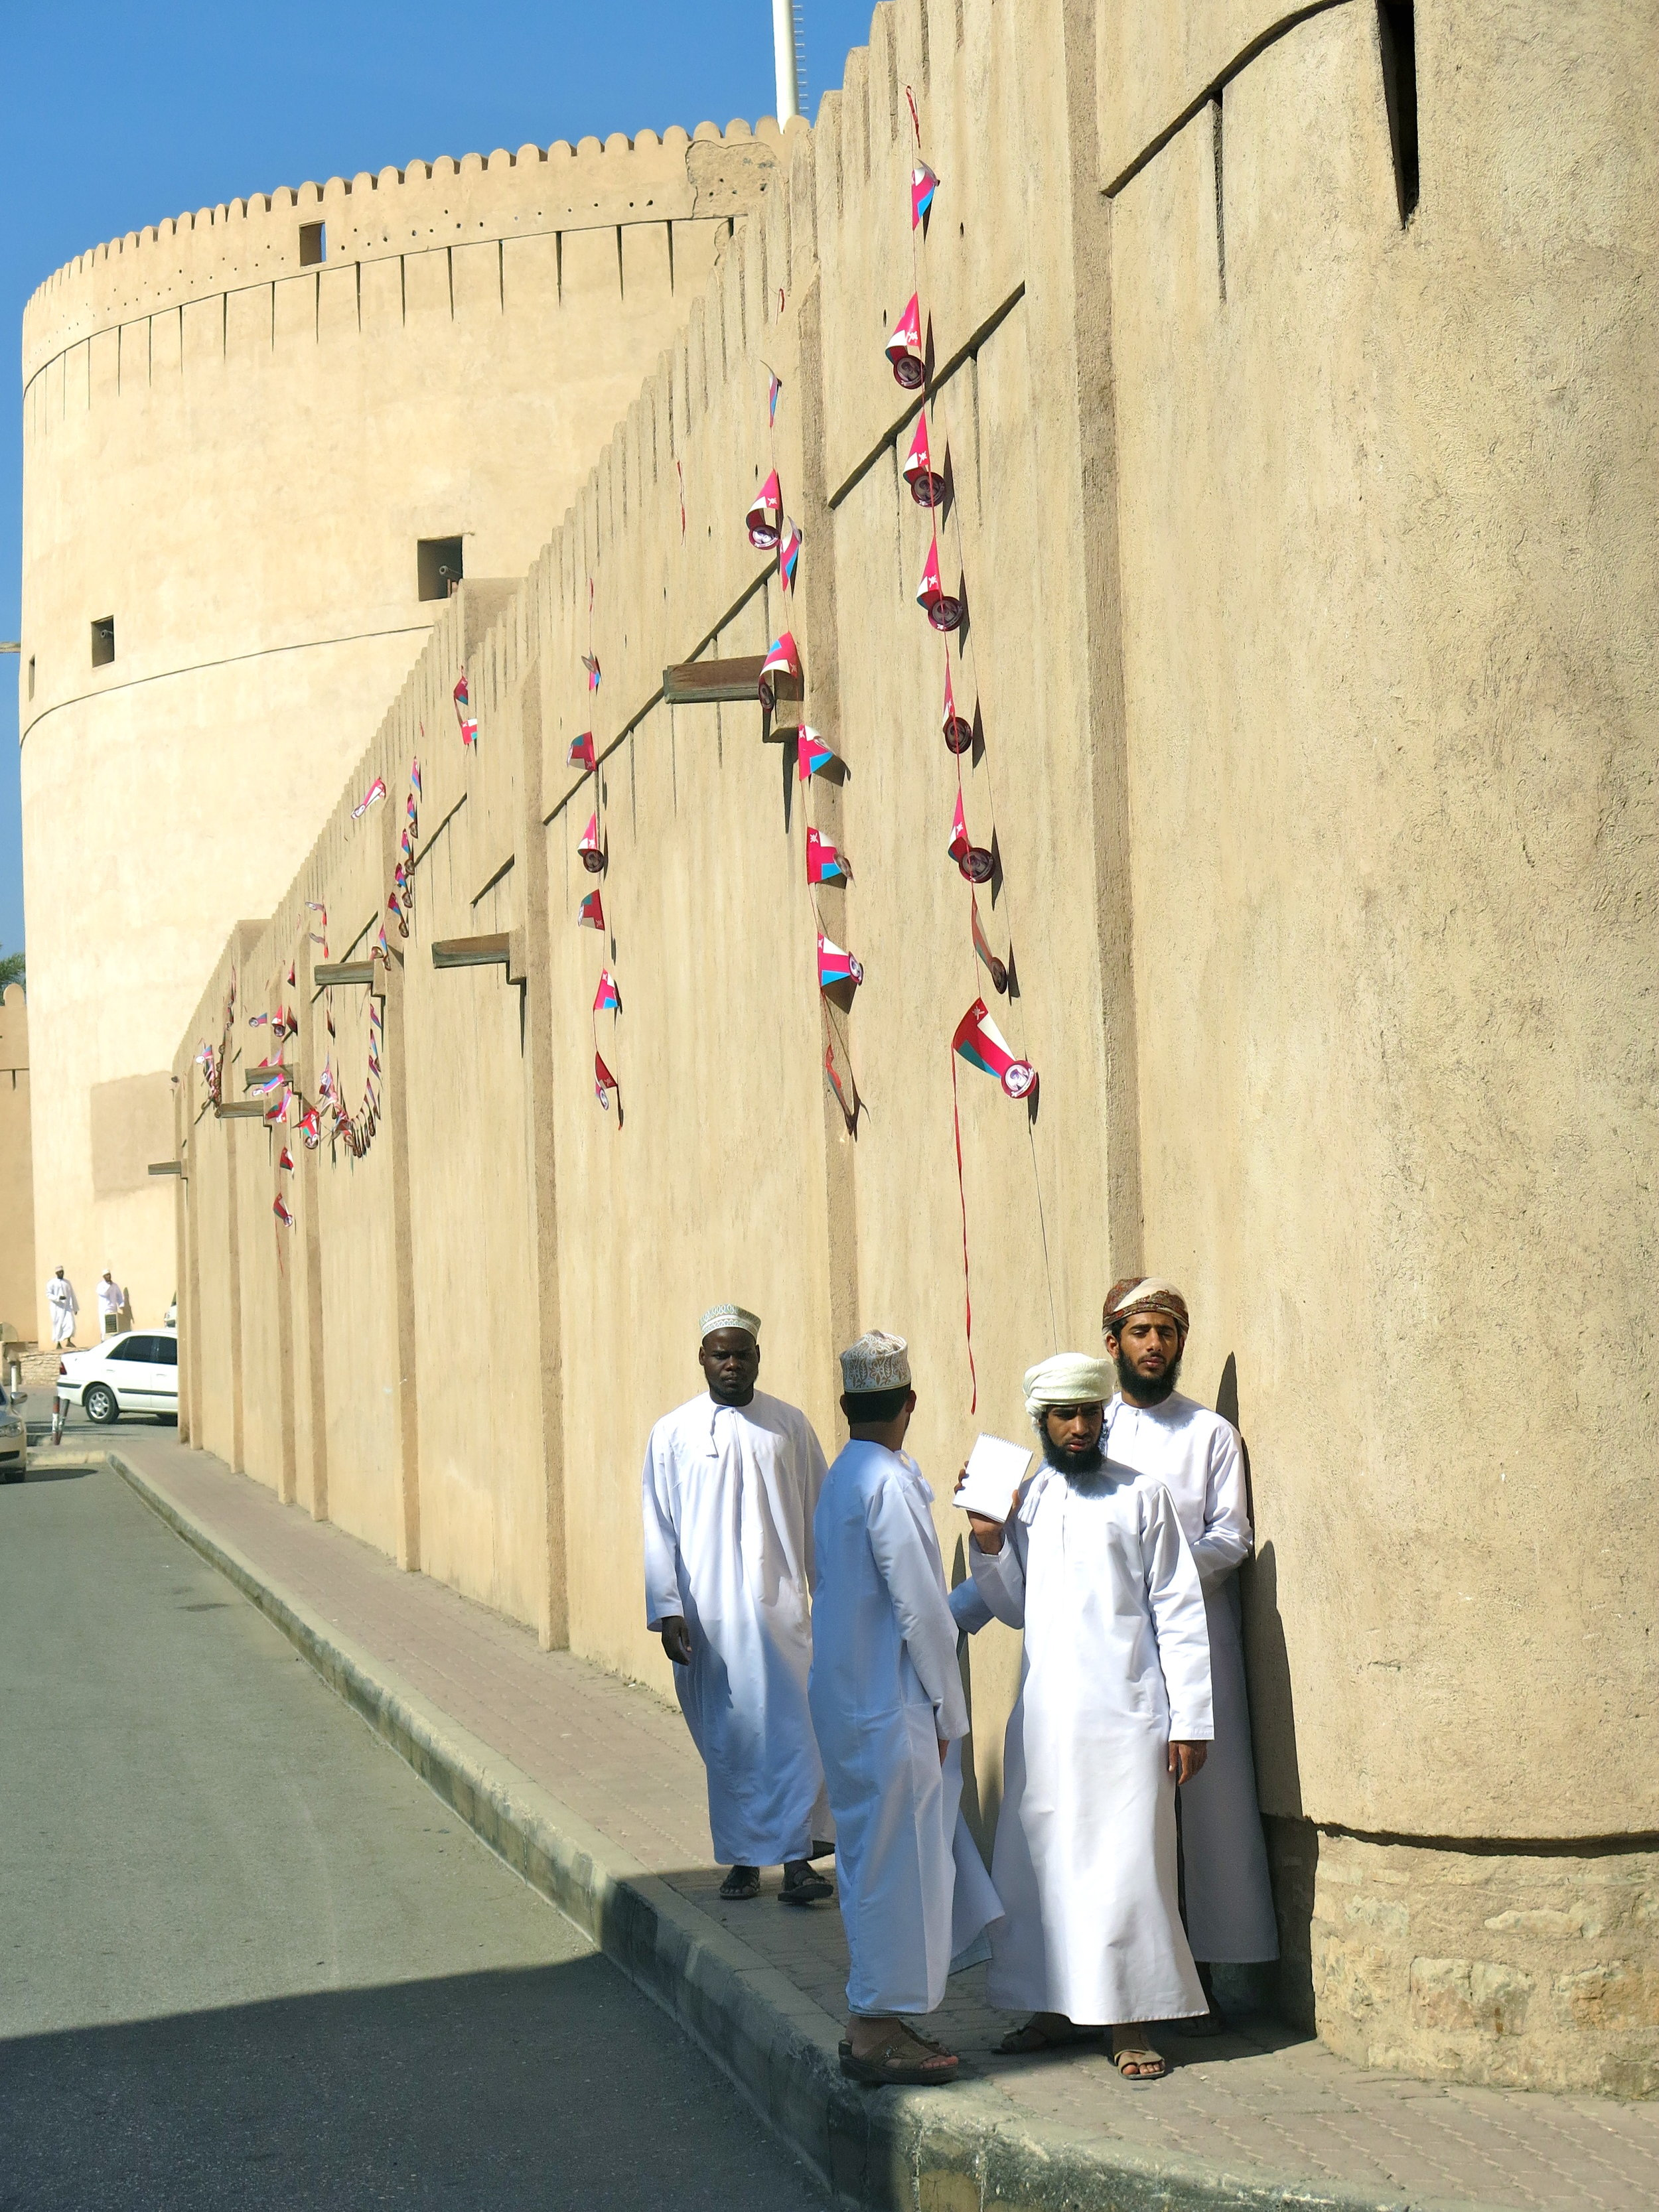 Omani men in traditional white dishdasha next to the old Fort